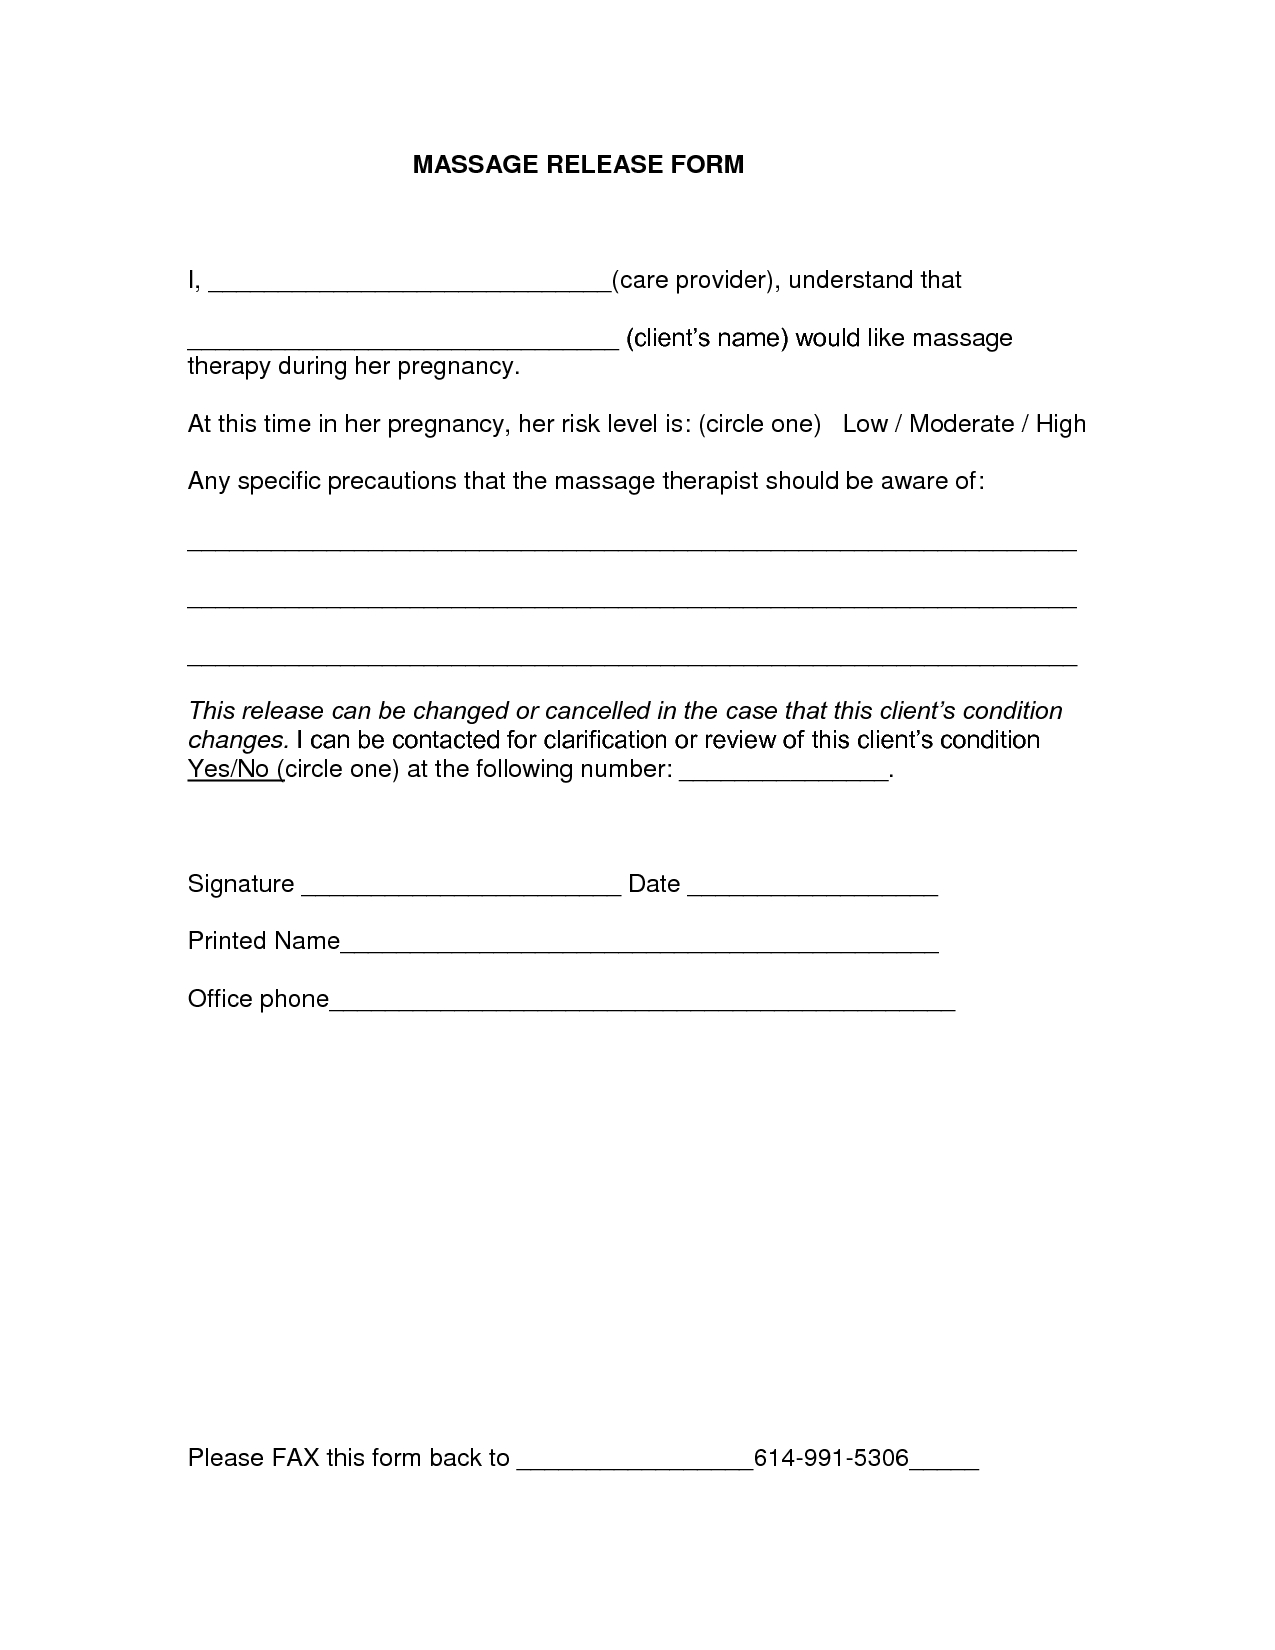 How to Write A Power Of attorney Letter Template - Photoaltan16 Medical Release form Template Release form Template